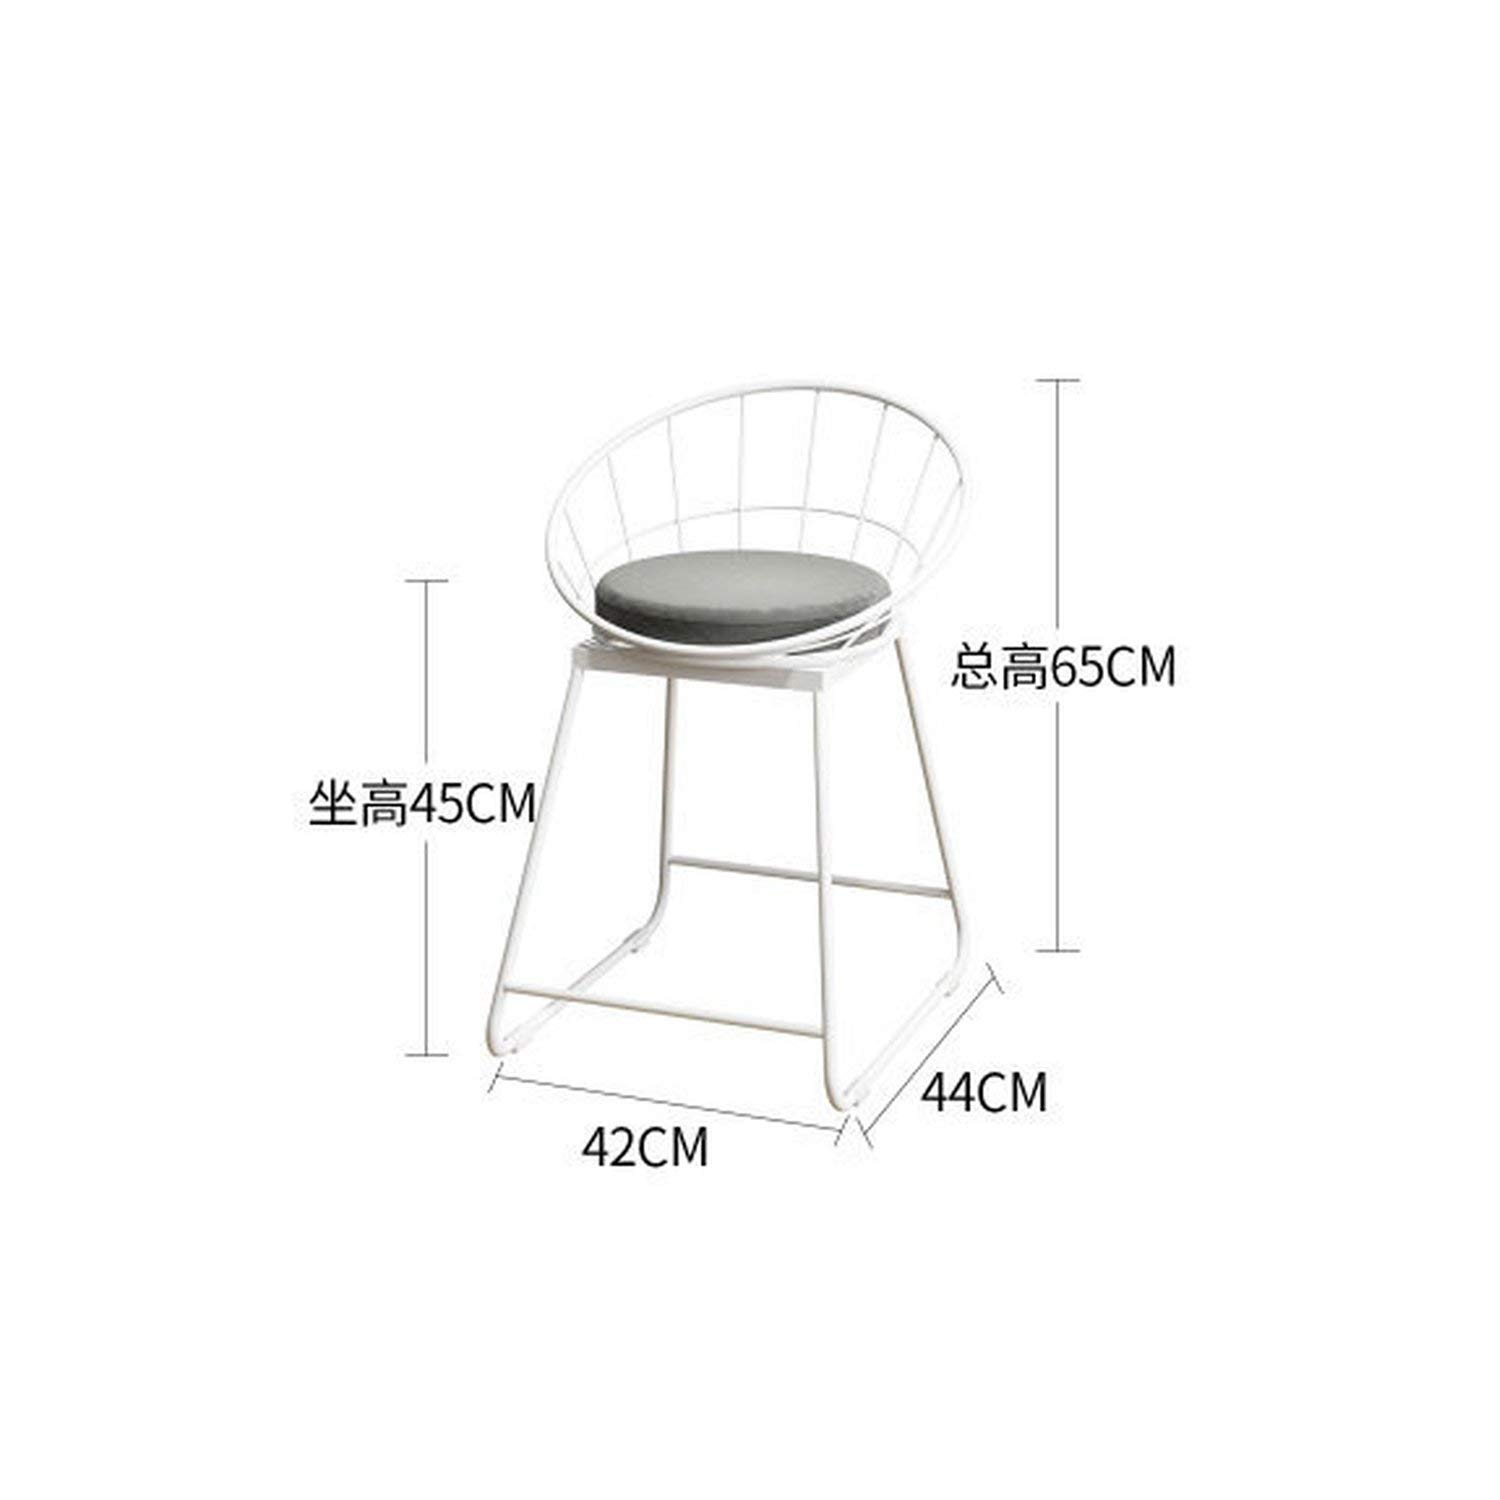 A-White-45cm tthappy76 Simple Bar Stool Wrought Iron Bar Chair gold High Stool Modern Dining Chair Iron Leisure Chair Nordic,C-gold-75Cm